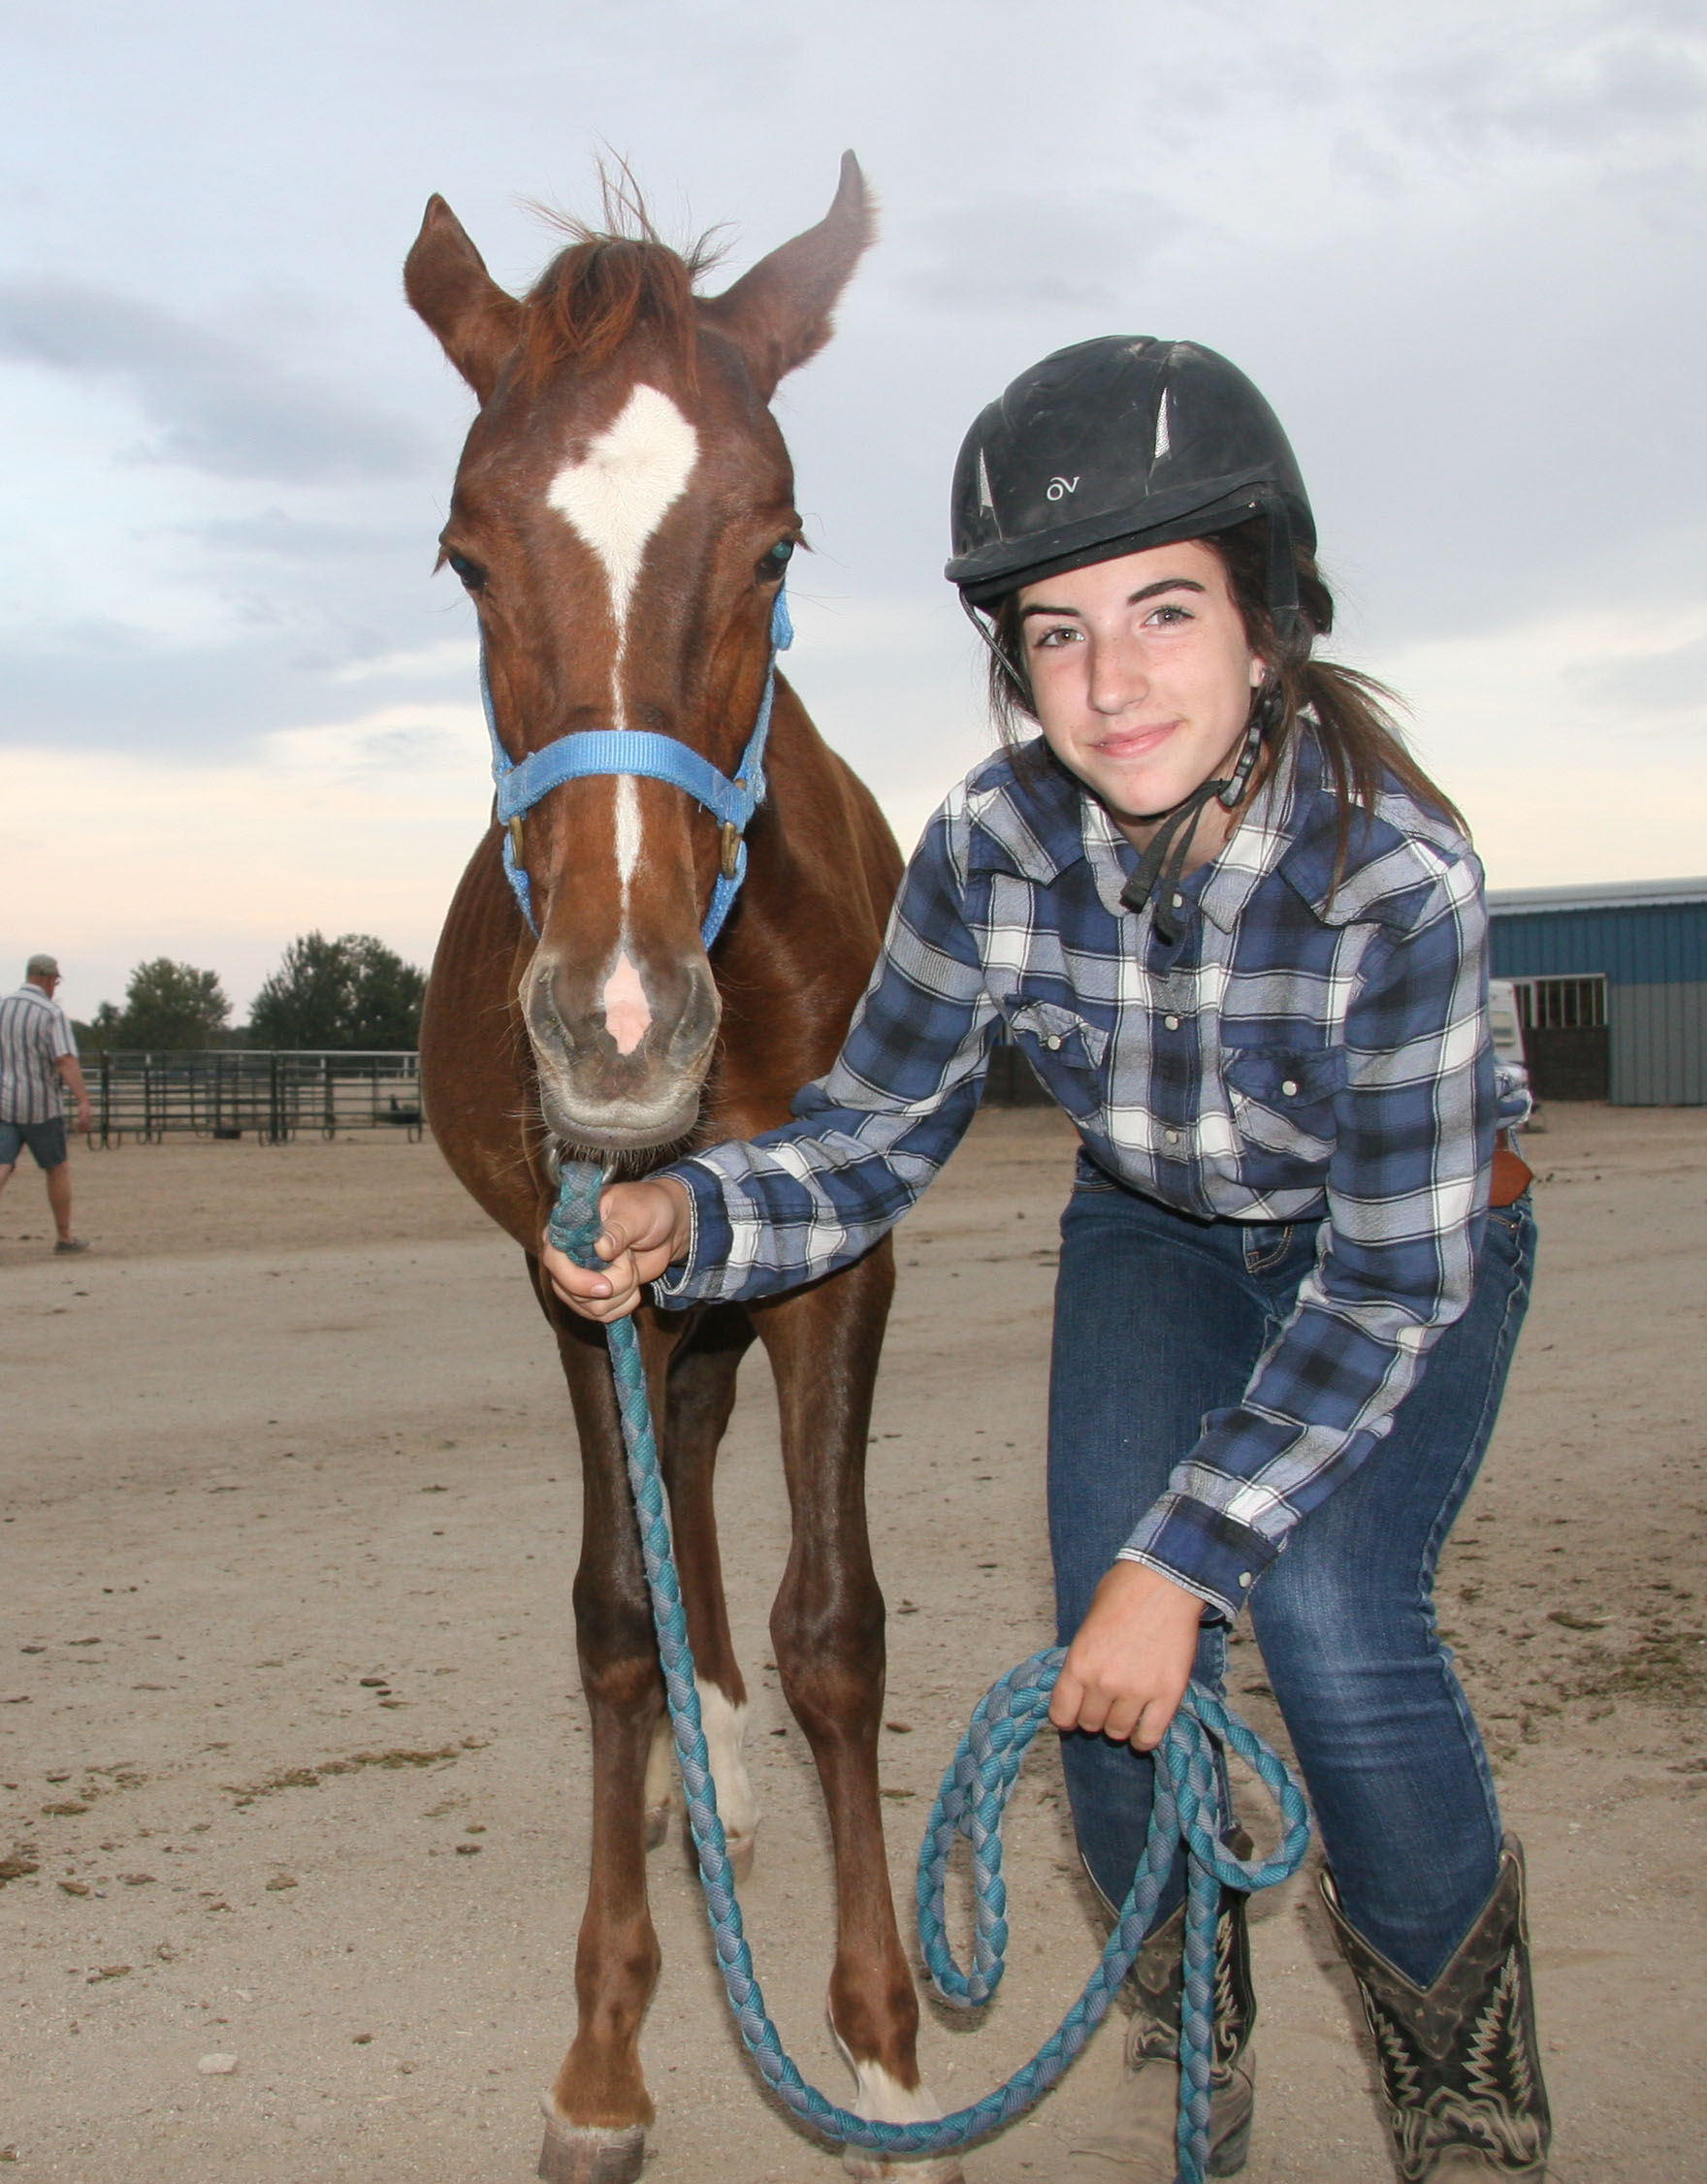 An Idaho 4-H member stands proudly with the mustang she is gentling as part of the partnership with BLM.